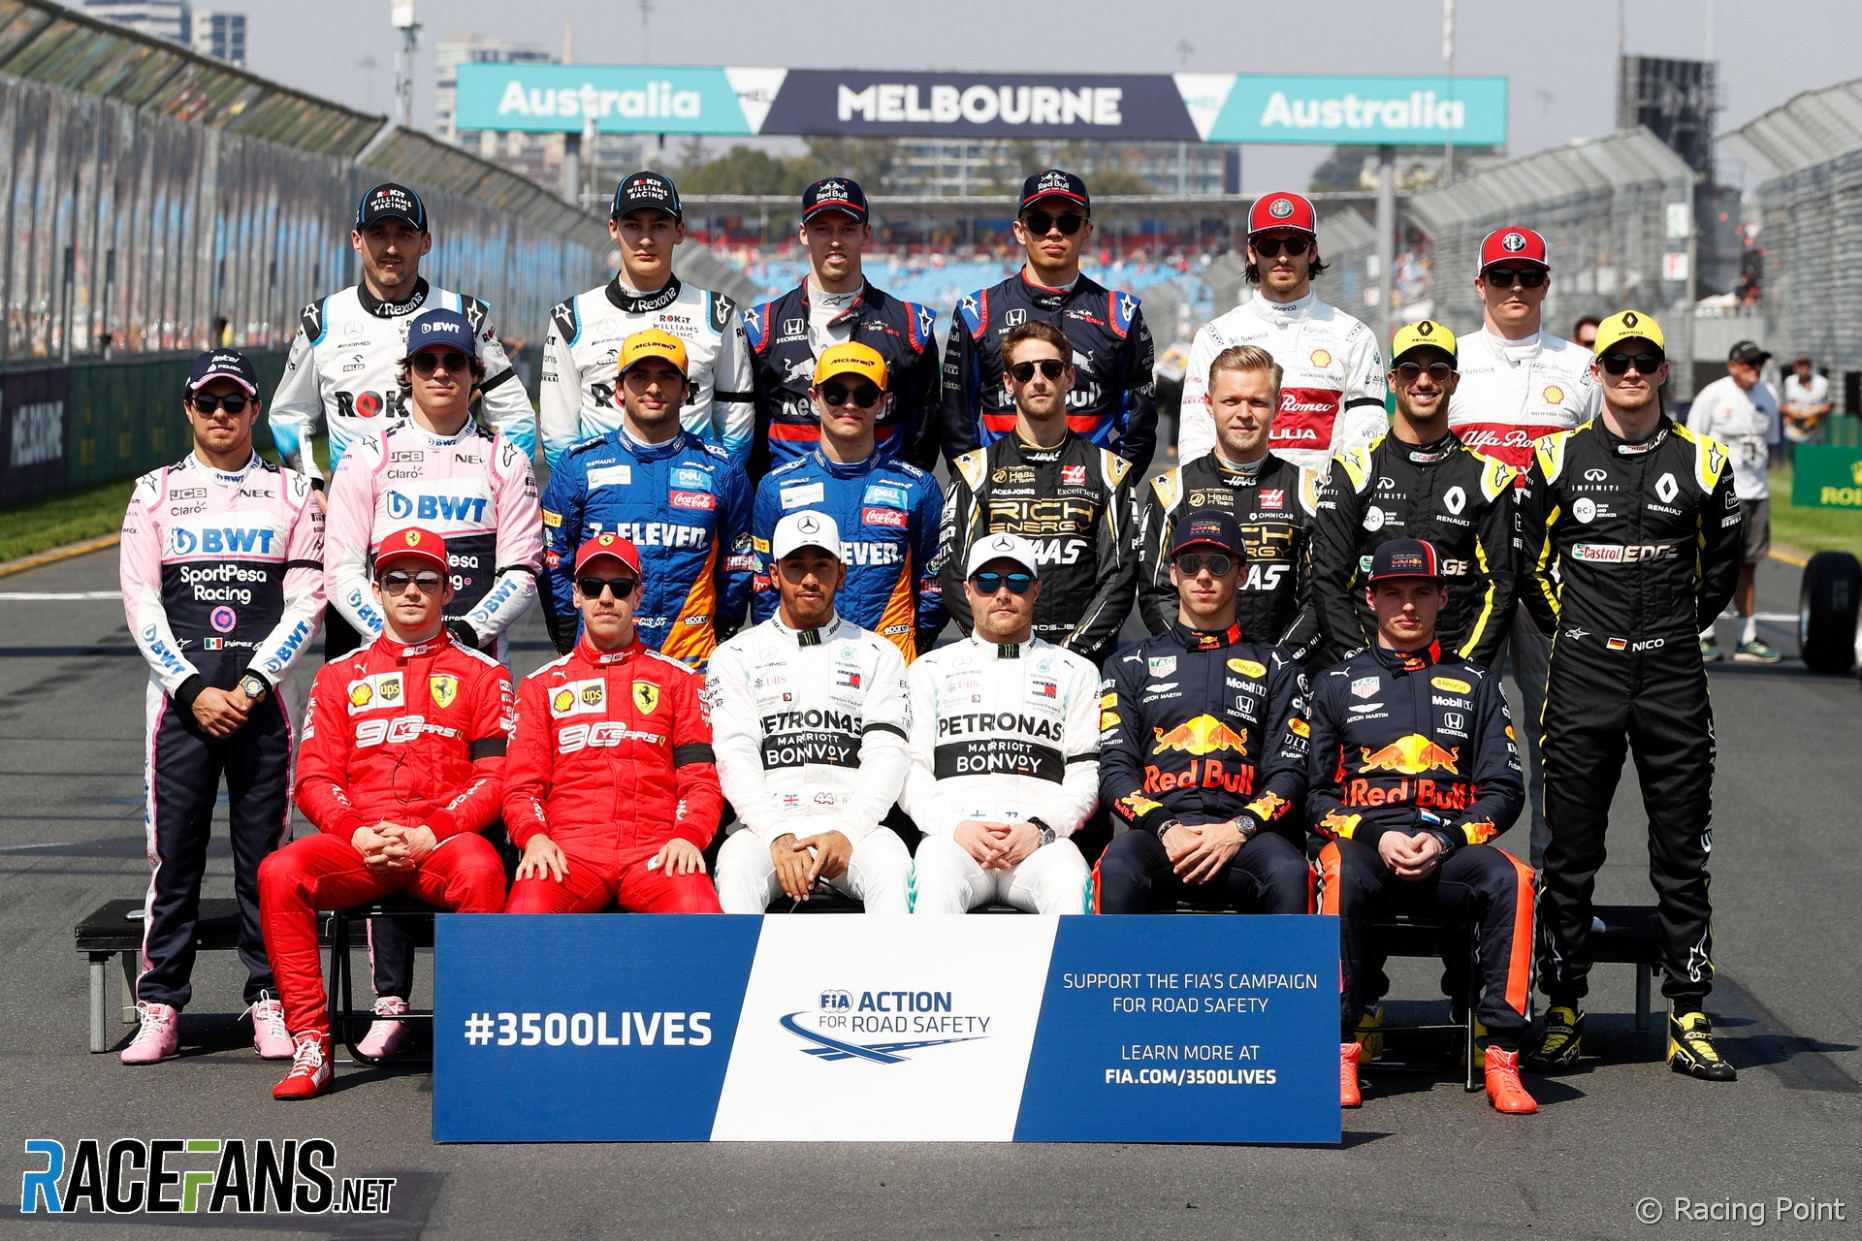 8 F8 drivers, teams and engine suppliers - RaceFans - ferrari reserve driver 2020